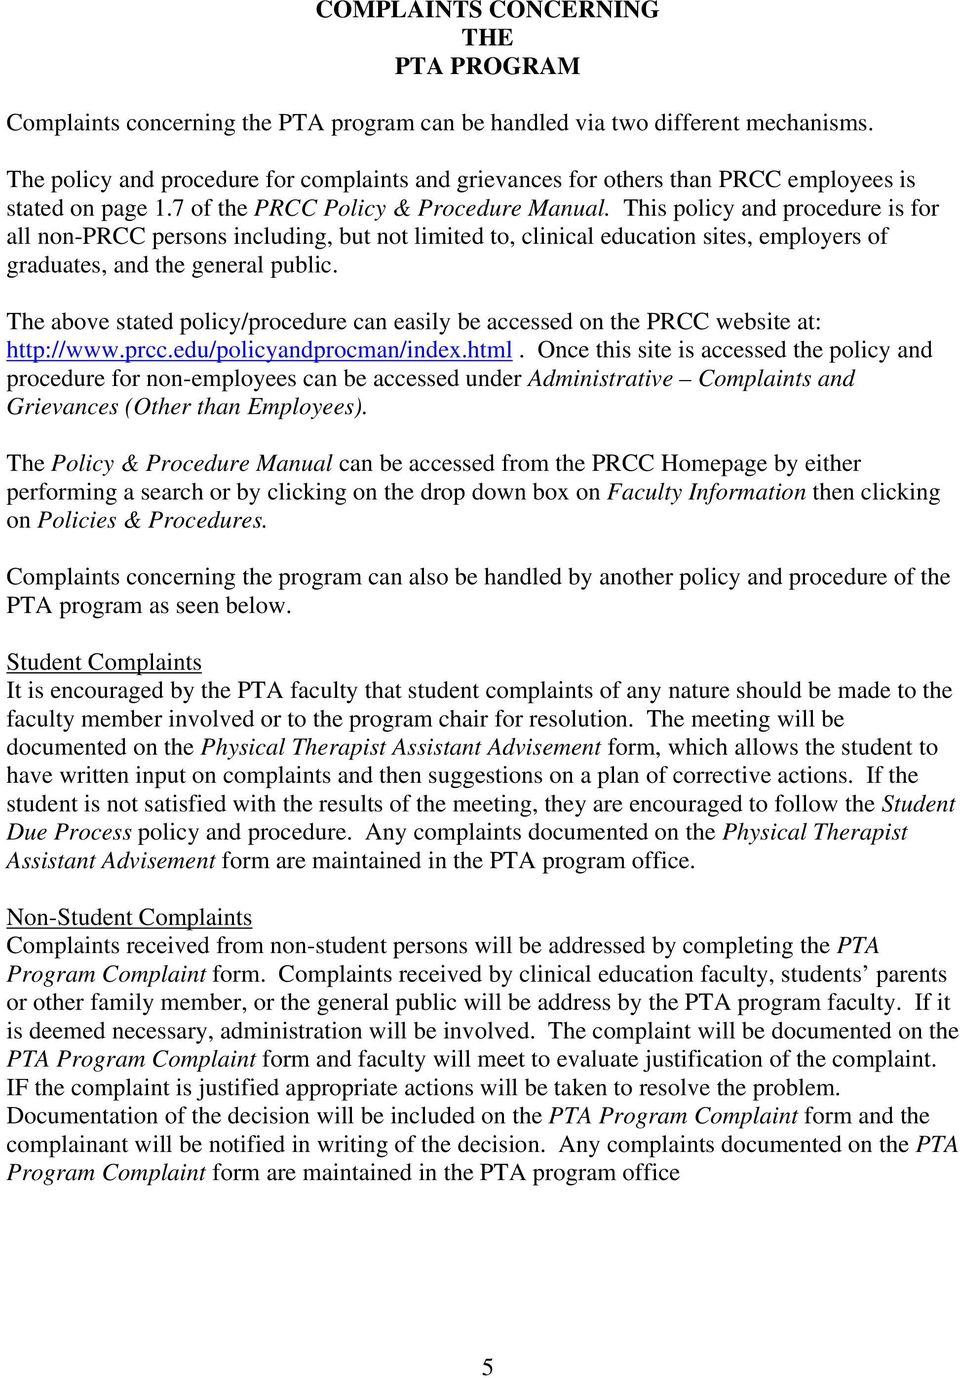 This policy and procedure is for all non-prcc persons including, but not limited to, clinical education sites, employers of graduates, and the general public.